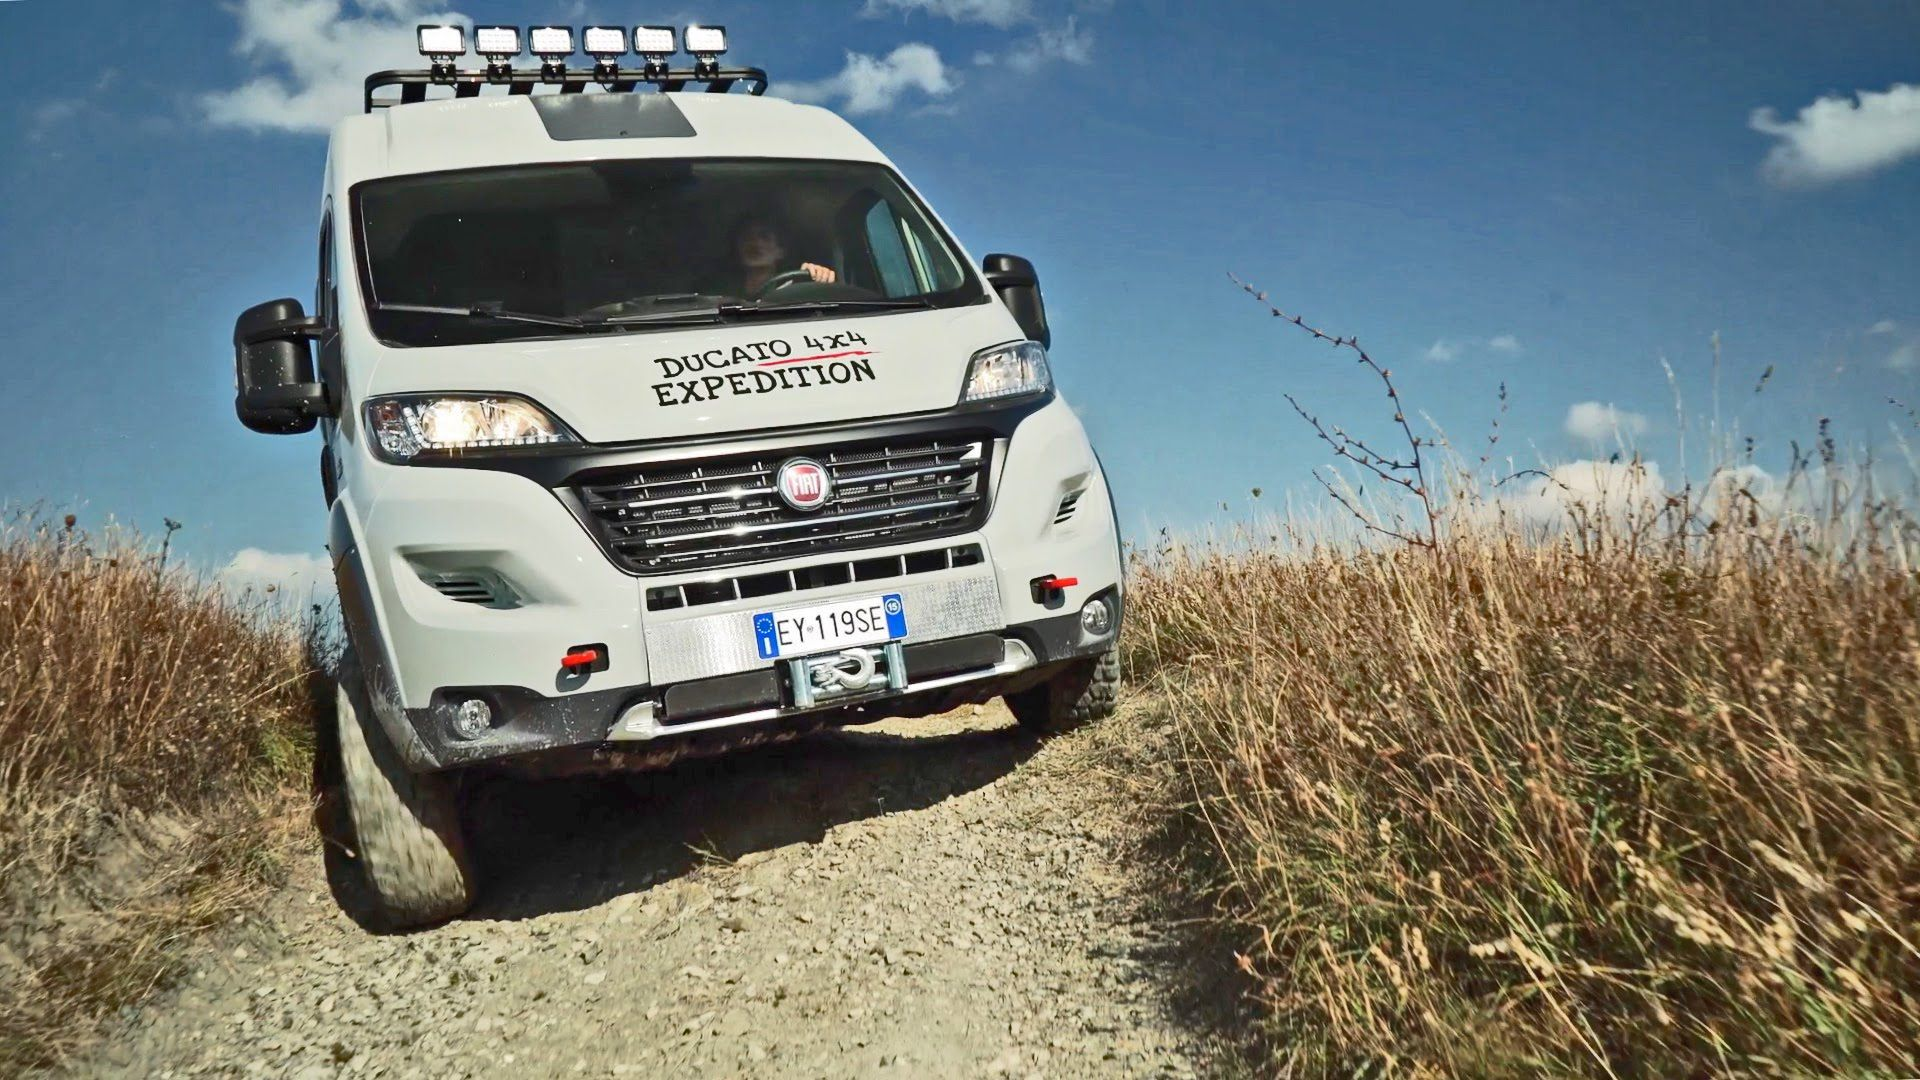 Fiat Ducato 4x4 Expedition Off Road Camper Van With Images